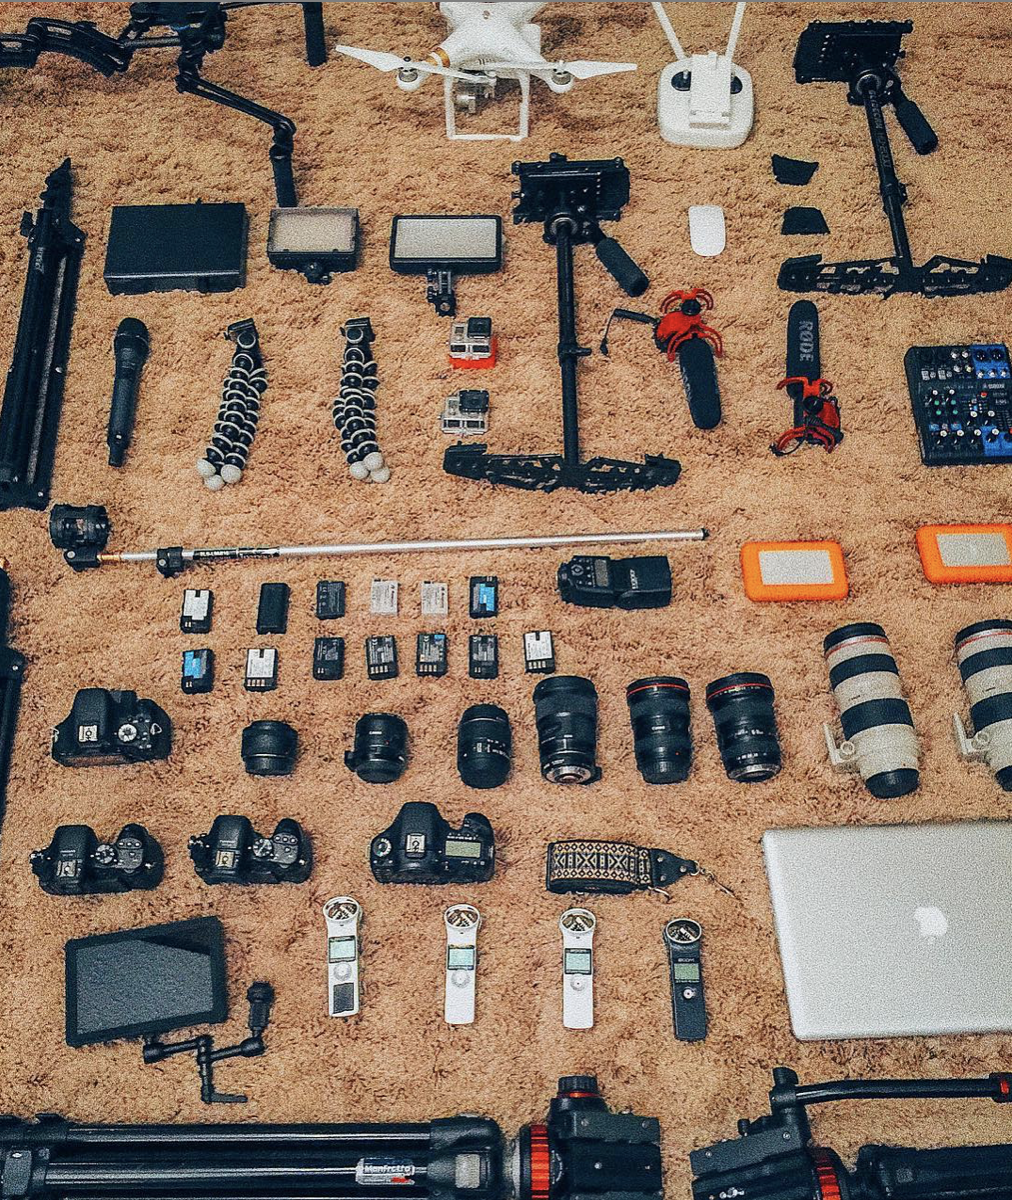 the gear we use - . Canon & Panasonic cameras. Apple computers. Adobe Photoshop & Lightroom. Final Cut Pro X. DJI drones. Glidecam stabilizers. Lacie storage. Manfrotto tripods…& any other good quality stuff that helps us tell your storyps. (Honestly, it's not so much about the gear. It's about the love, teamwork, editing and storytelling that makes your visuals what they need to be. We could capture the same vibes with a potato 🥔)